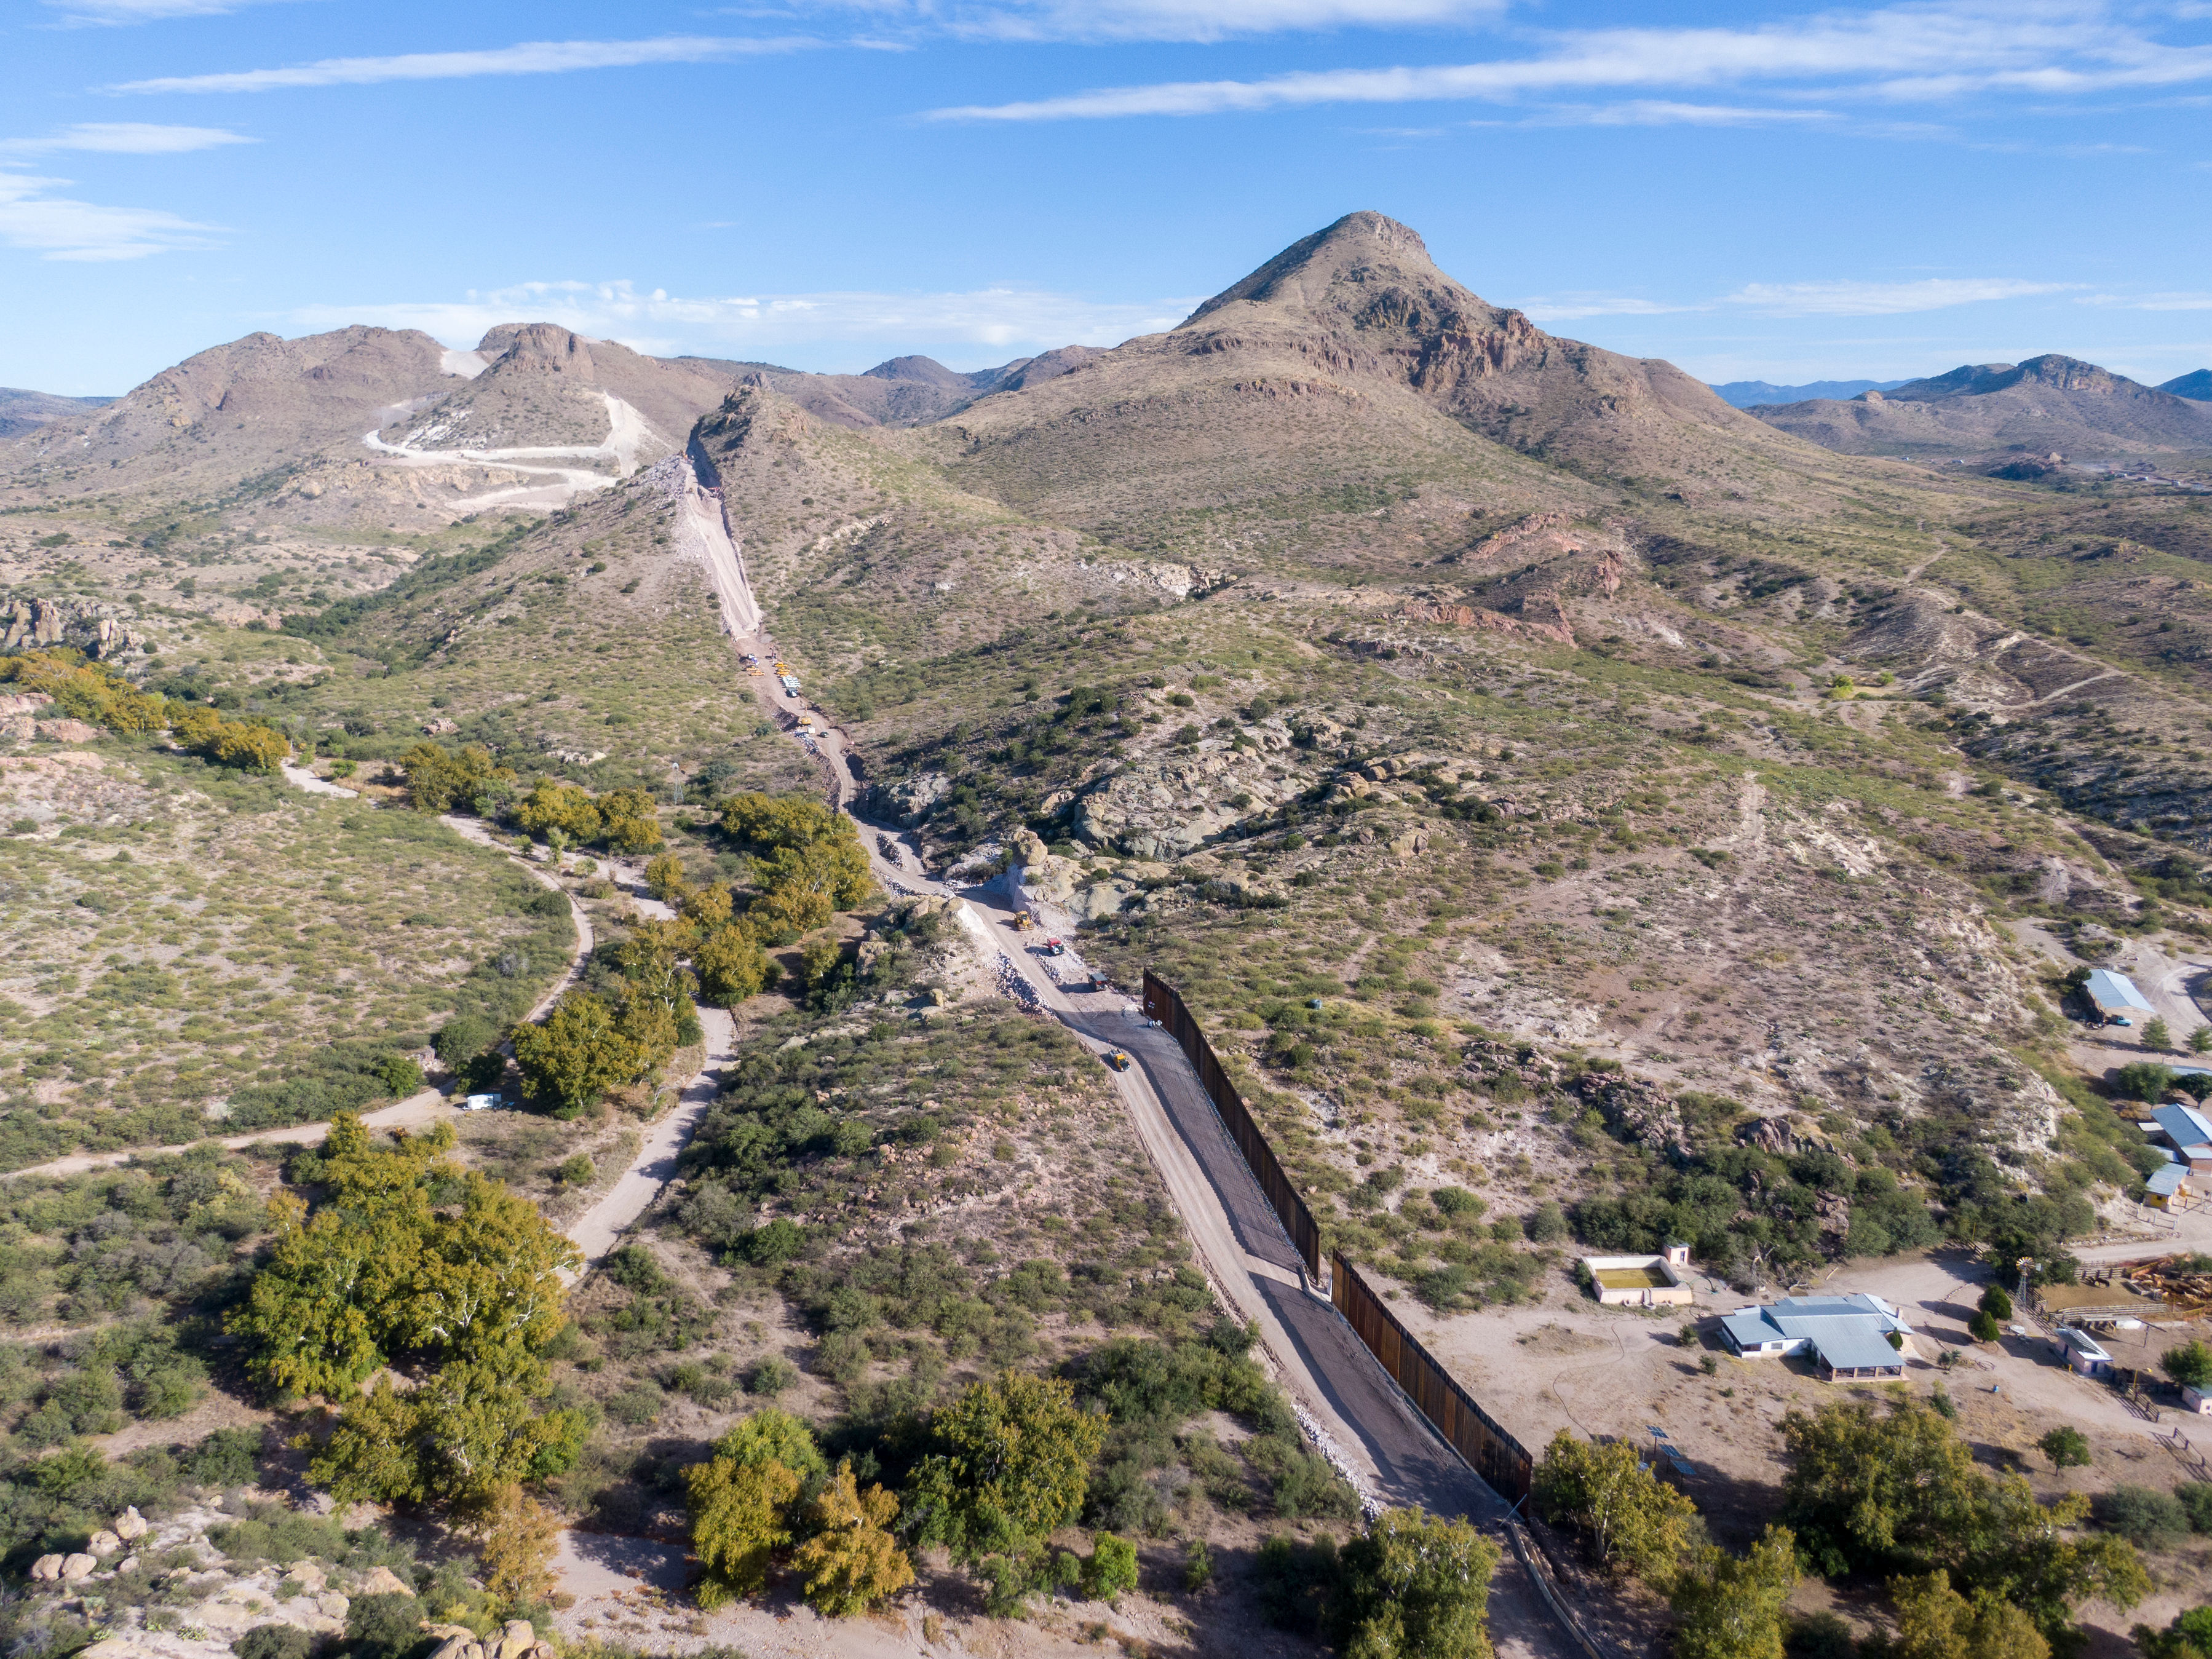 A portion of the border wall is under construction in Guadalupe Canyon